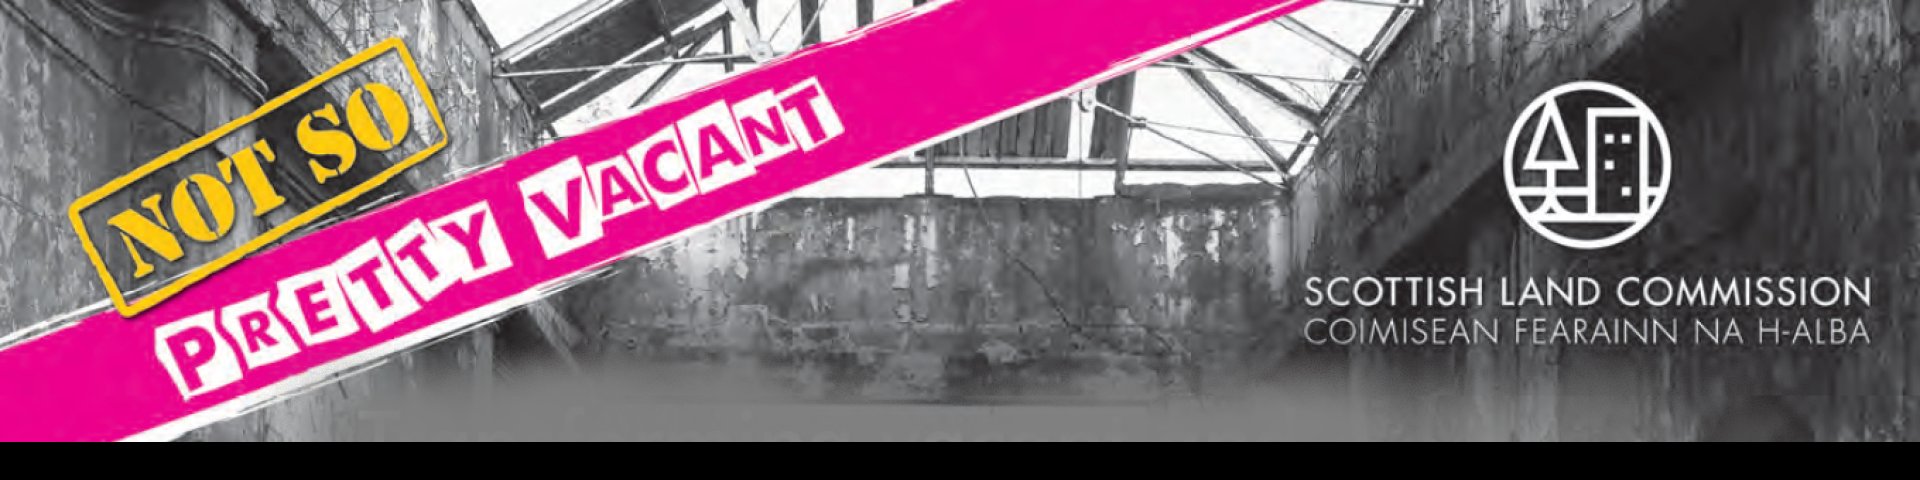 Vacant and Derelict land logo with notsoprettyvacant hashtag